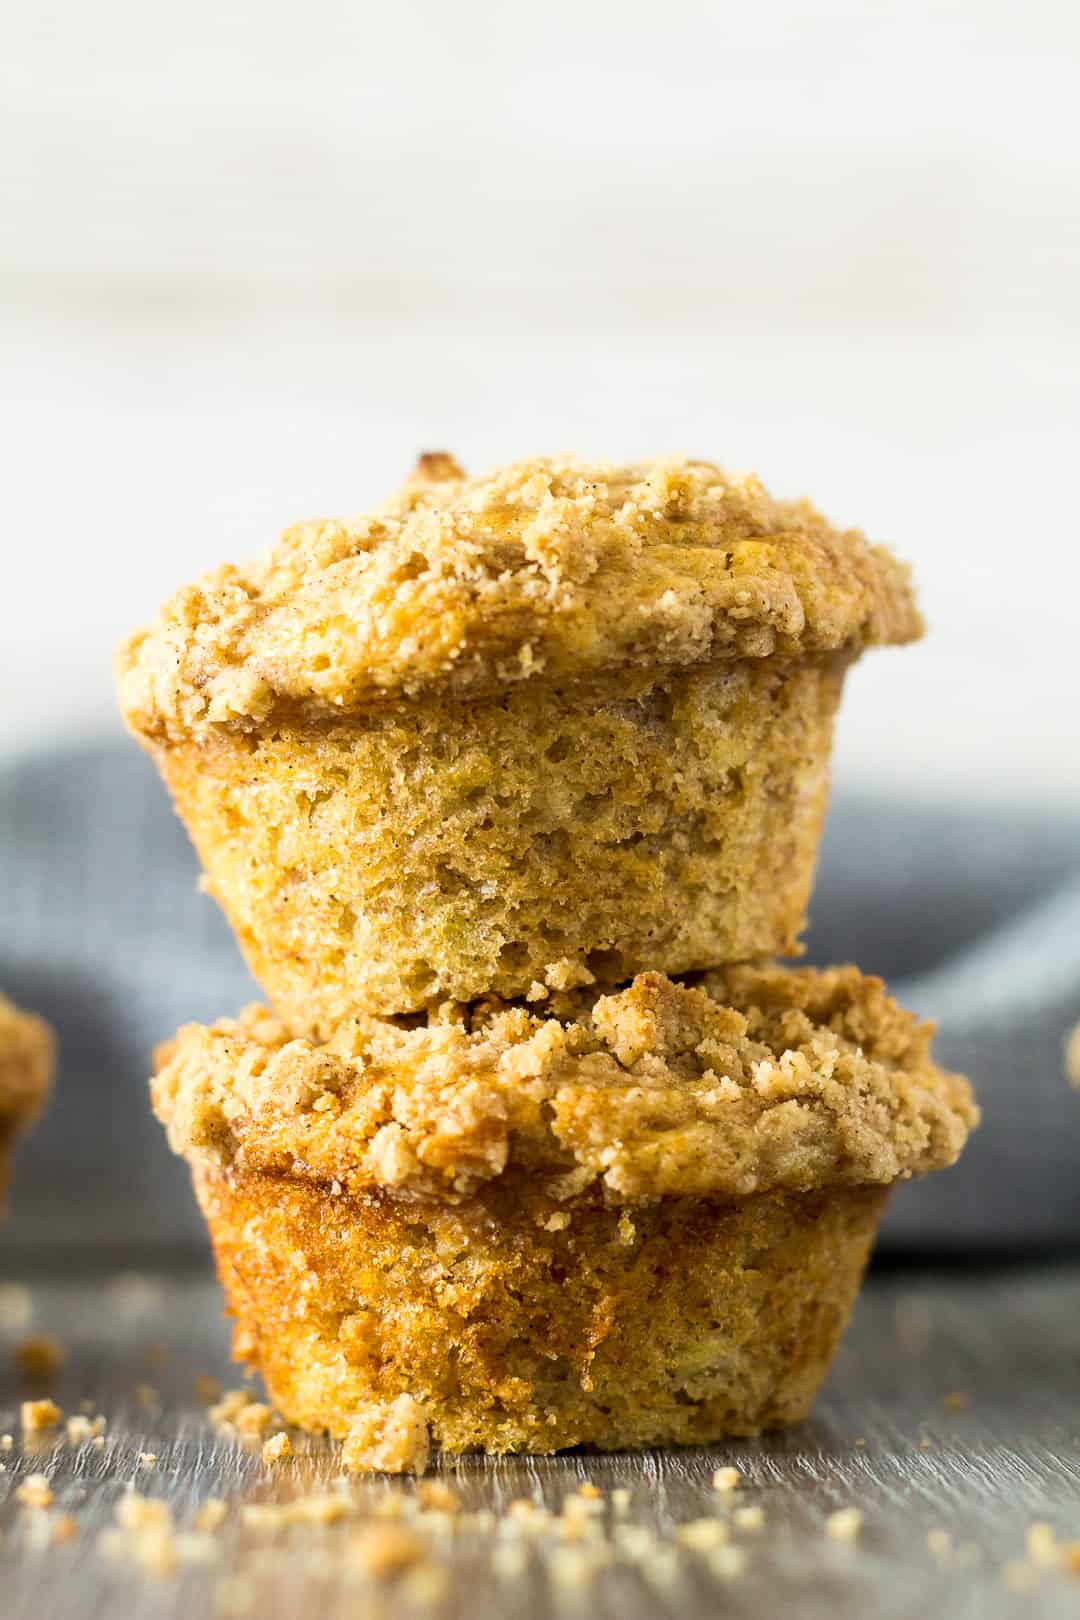 A stack of two Banana Crumb Muffins.